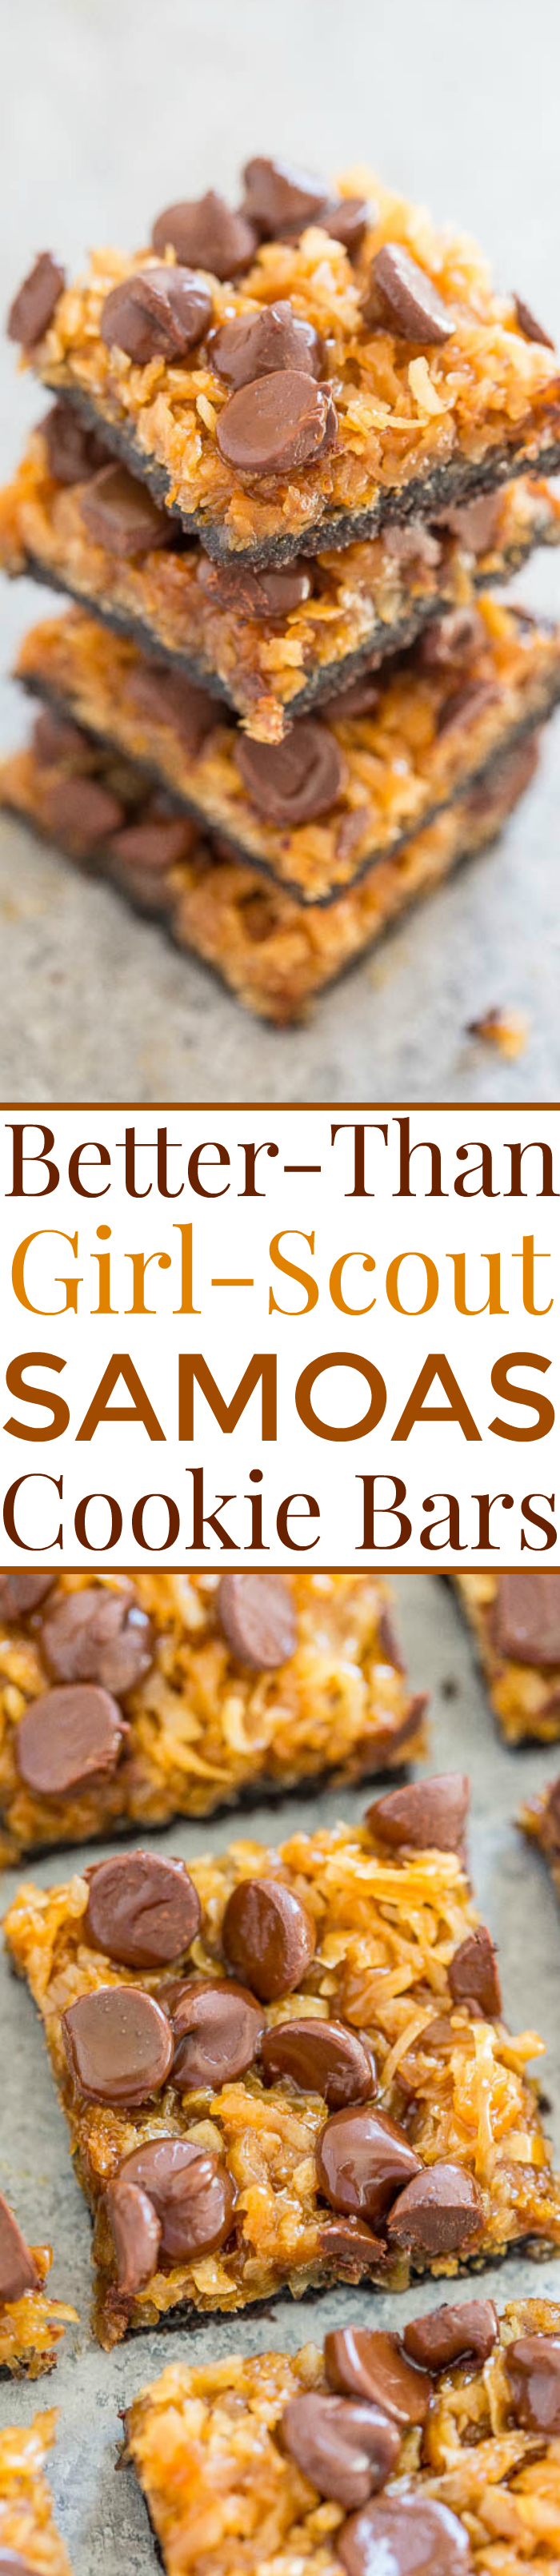 Two picture collage of Better-Than-Girl-Scout Samoas Cookie Bars with graphic title